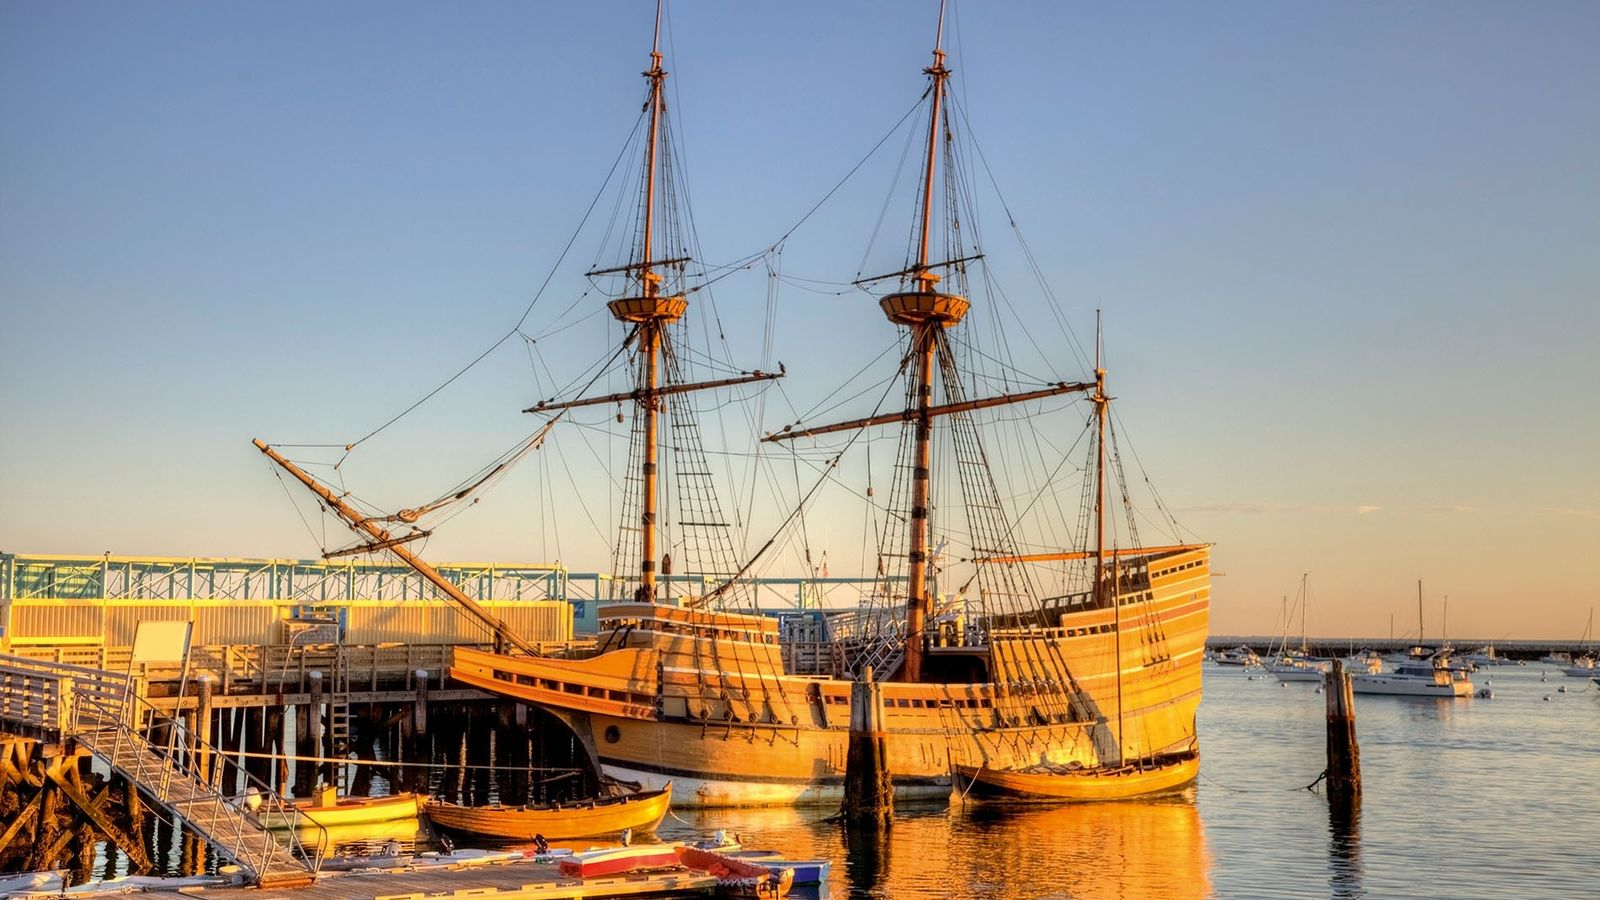 The Mayflower II is a replica of the 17th century ship Mayflower, celebrated for transporting the ...